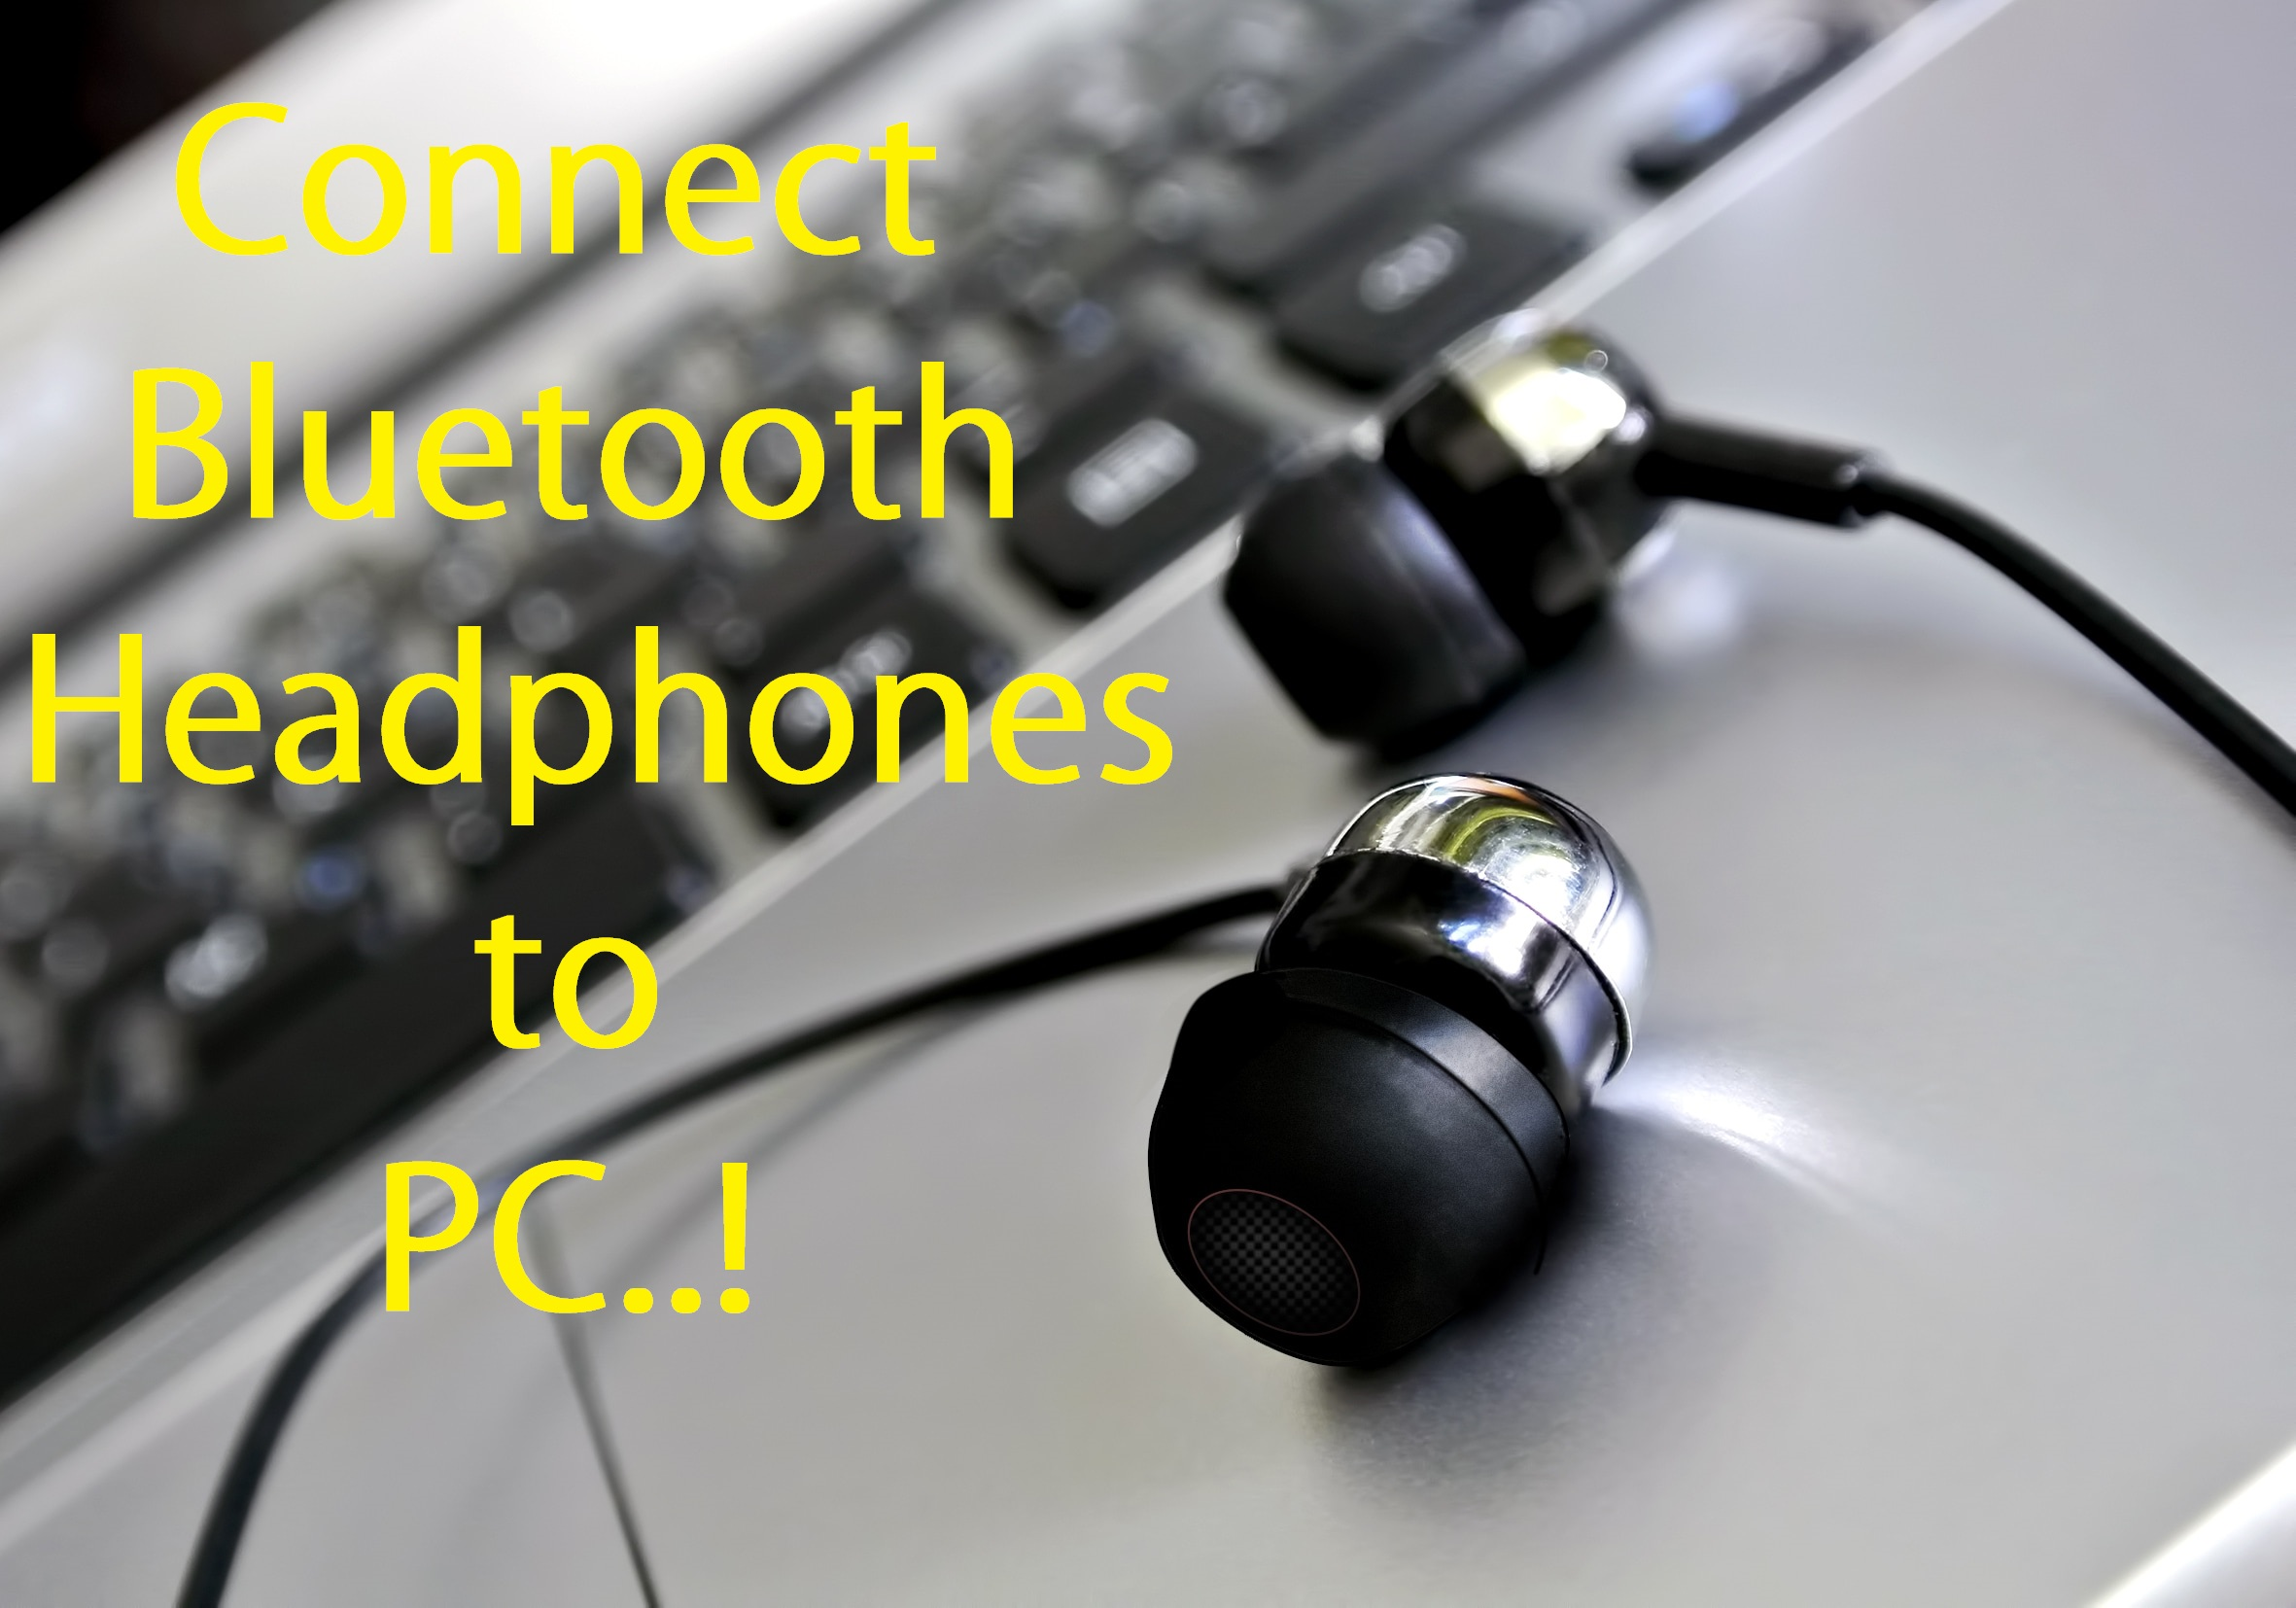 connect bluetooth headphones to pc